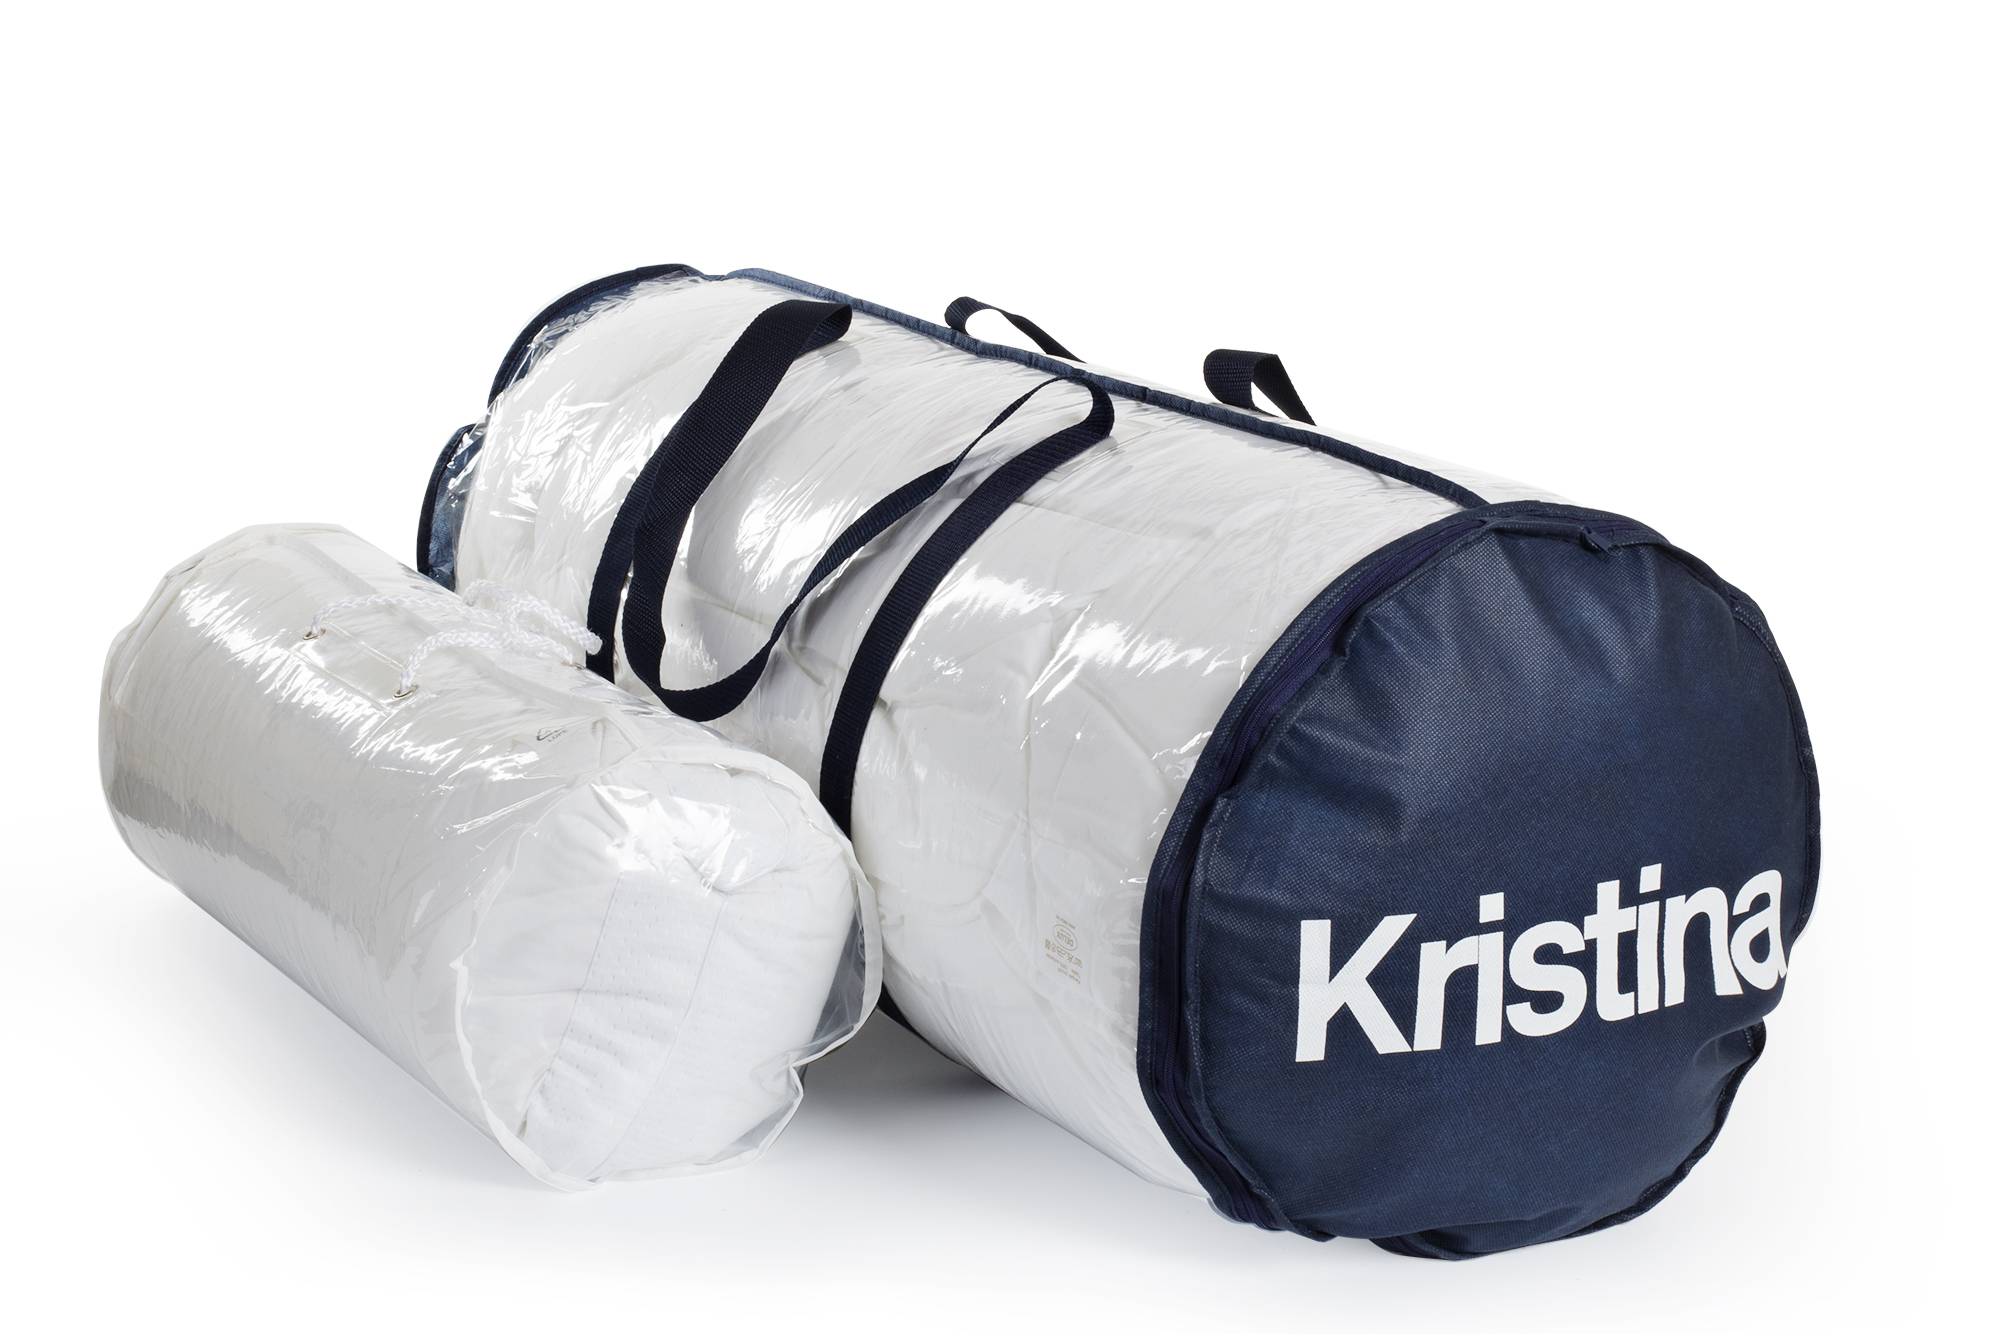 set shipping bedding of on mattress orders storage free moving and overstock product bag over bags linenspa bath